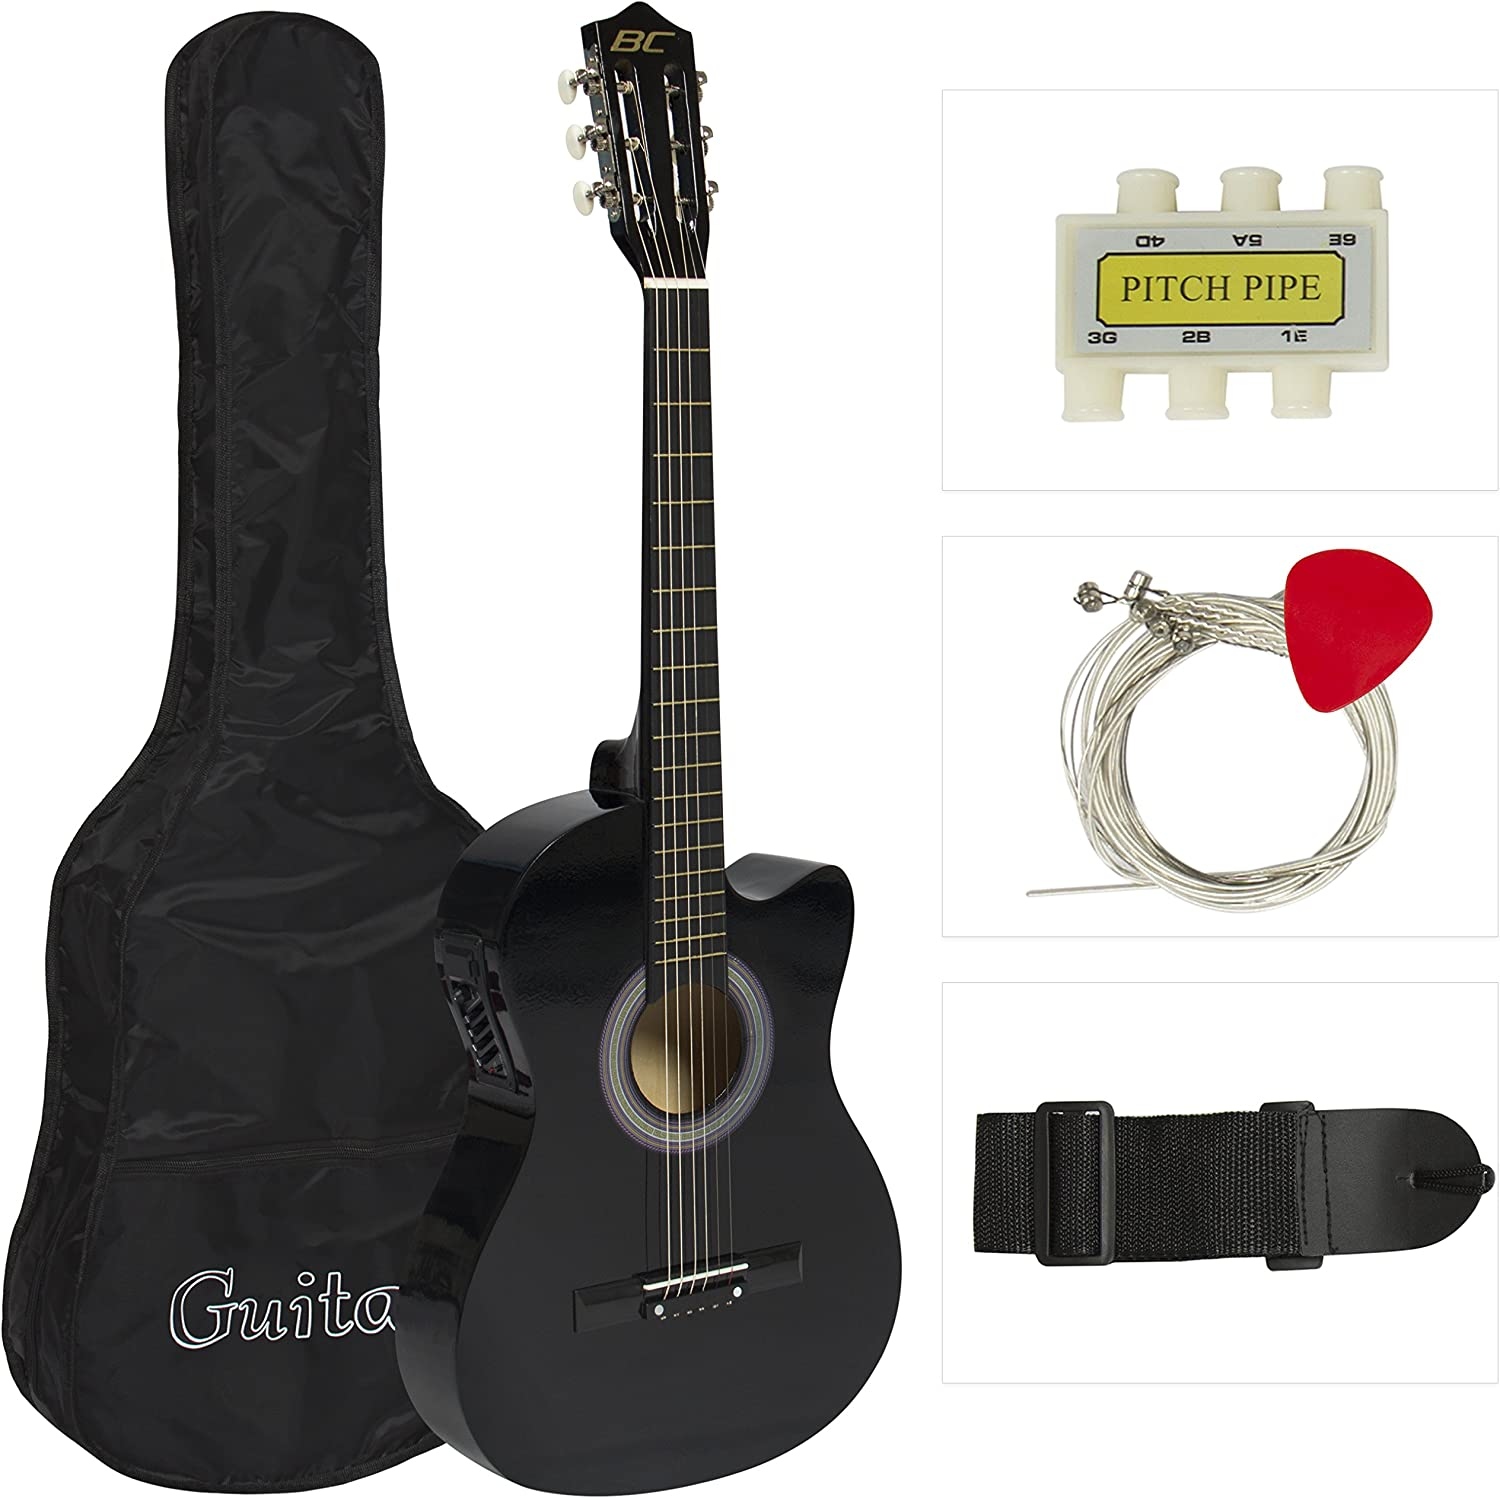 38 Inch Beginner Acoustic Guitar Cutaway Type Guitar for Starter with String and Pick Green